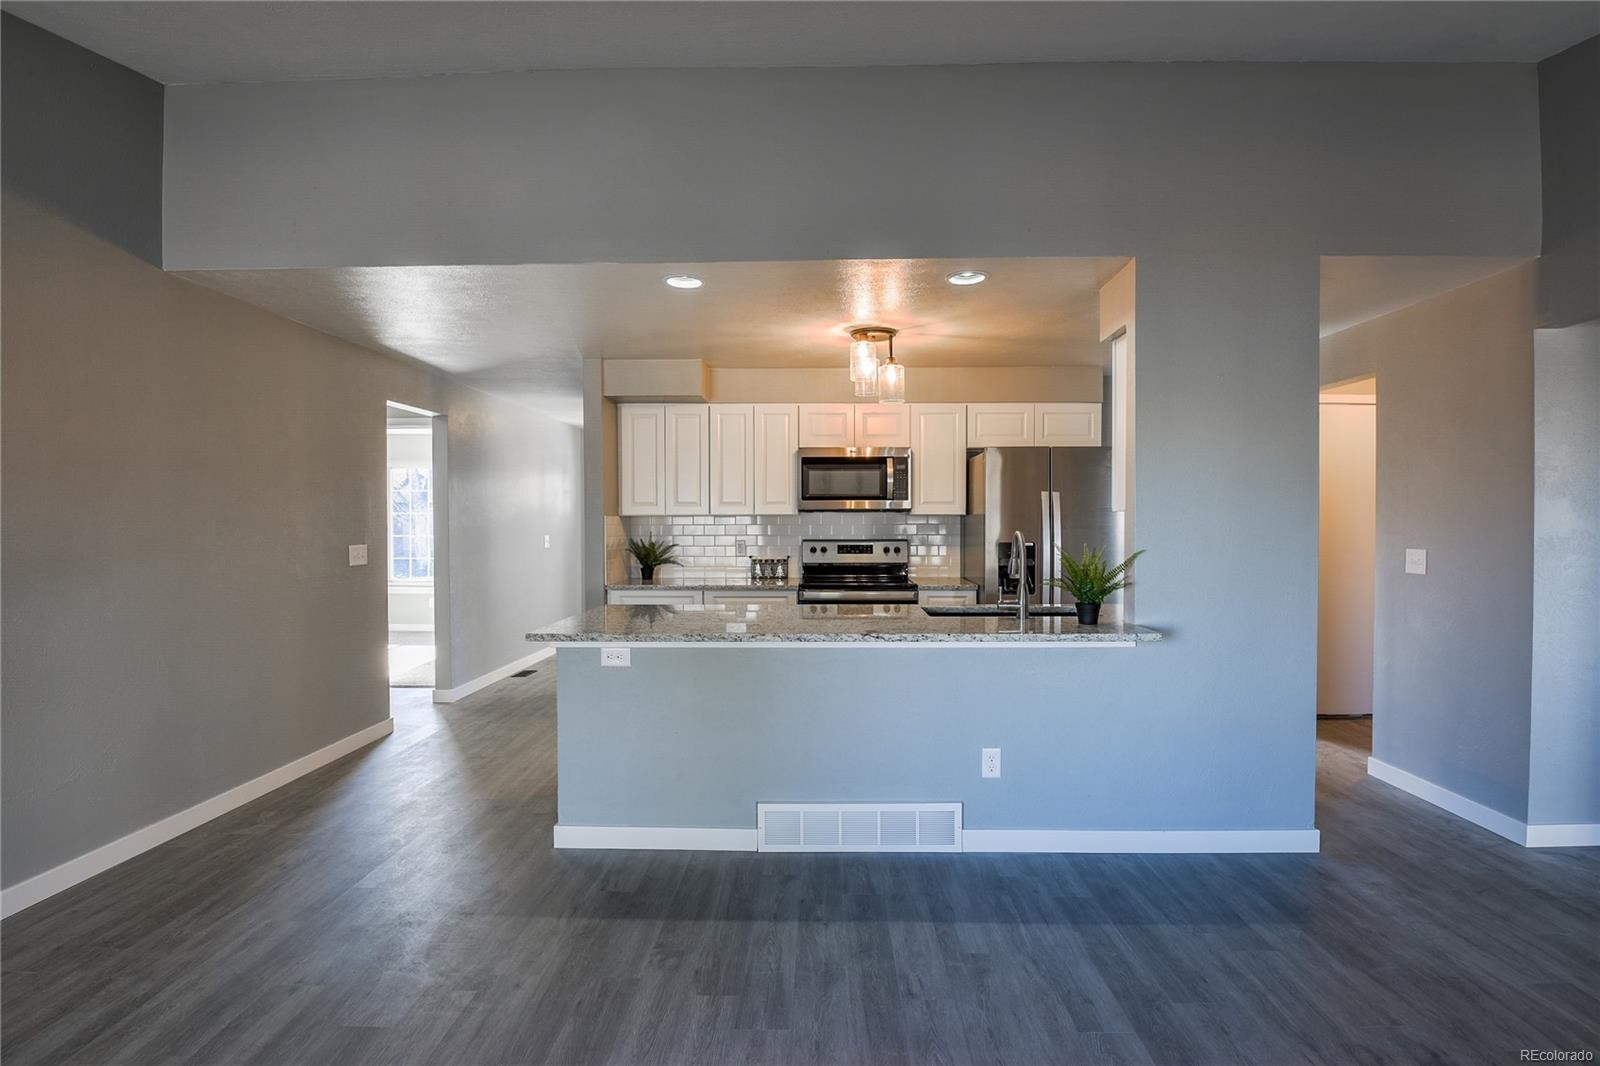 MLS# 8183776 - 11 - 2547 W 104th Circle, Westminster, CO 80234